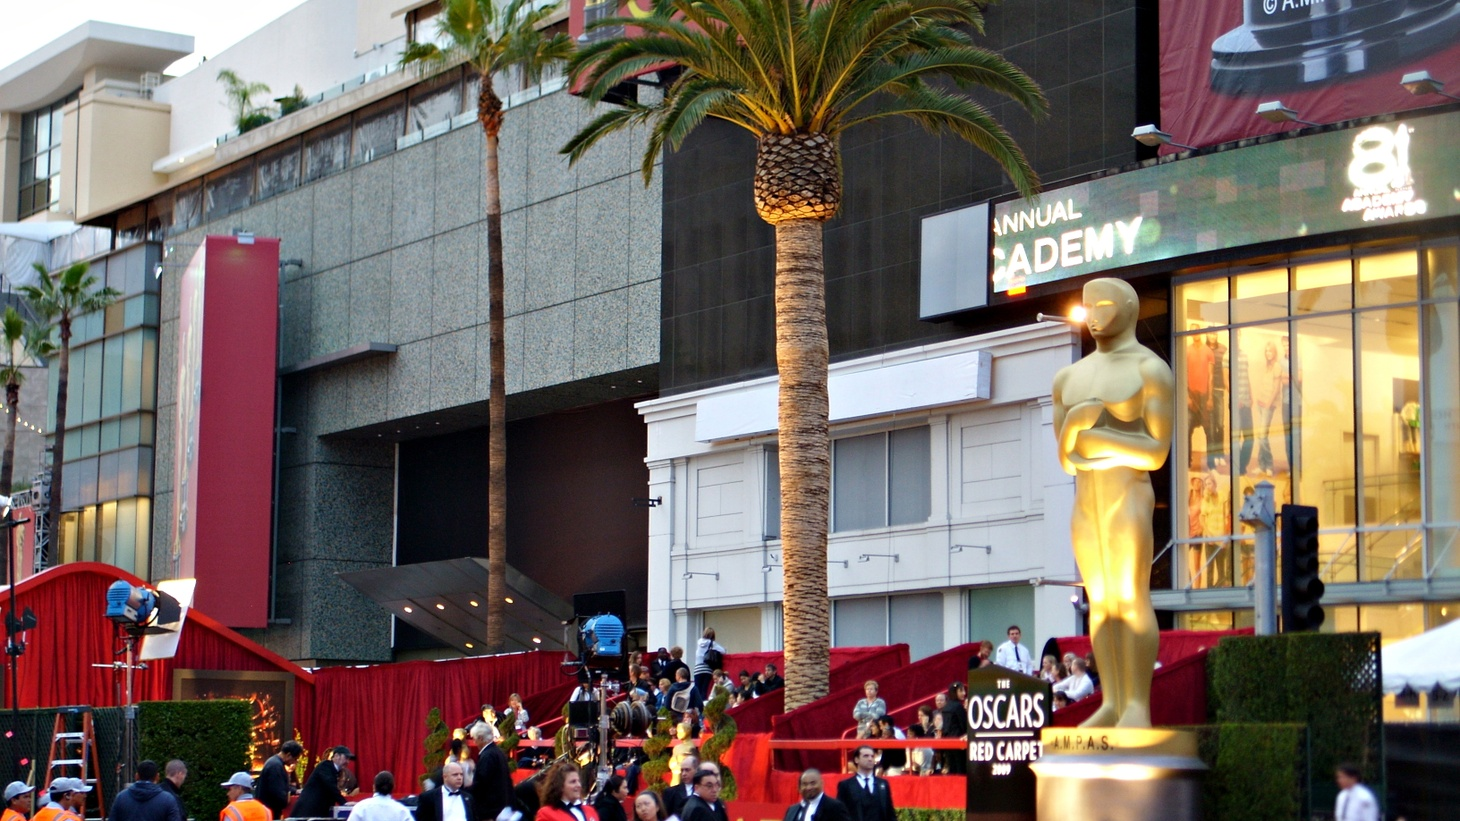 The Oscars are coming up at the end of this month. For nominees that means interviews, photo shoots and swag. Oscars gift bags are famously lavish, and the Academy says they've gotten so over-the-top, the Academy is now suing the company that puts them together. Basically, the Academy wants nothing to do with them.     Photo by BDS2006